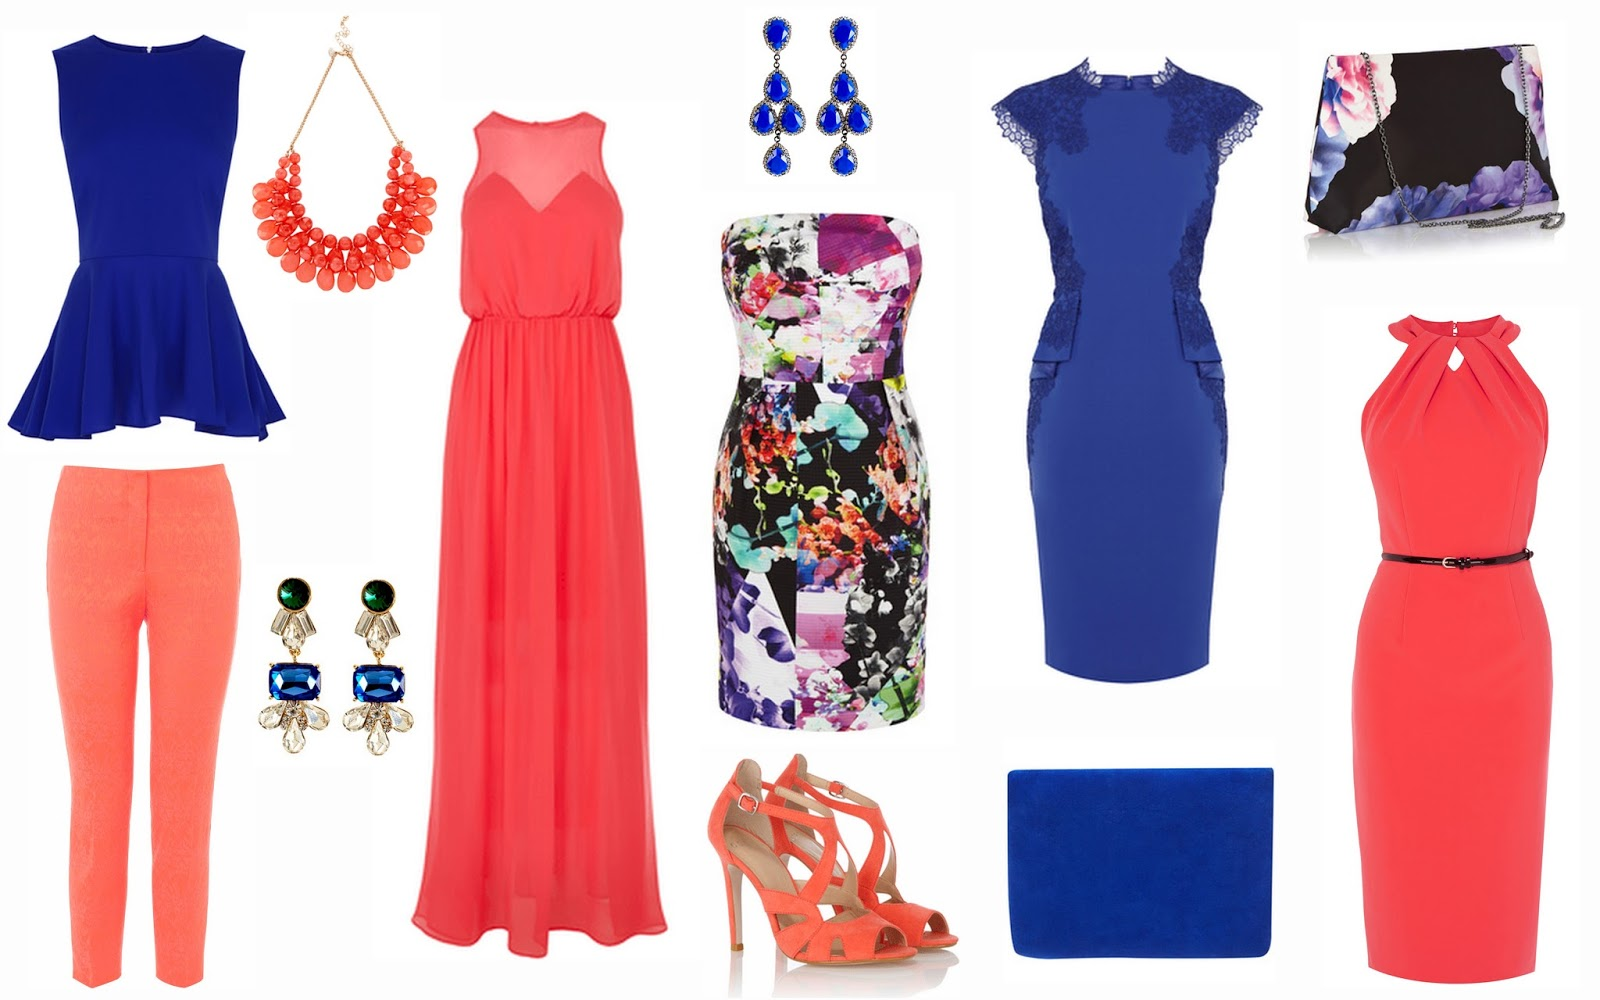 summer dresses for wedding guest summer dresses for weddings herona coral cropped jacquard trousers 45 coral necklace 20 jango drop earrings 18 marcha coral maxi dress 95 groucho blue earrings 12